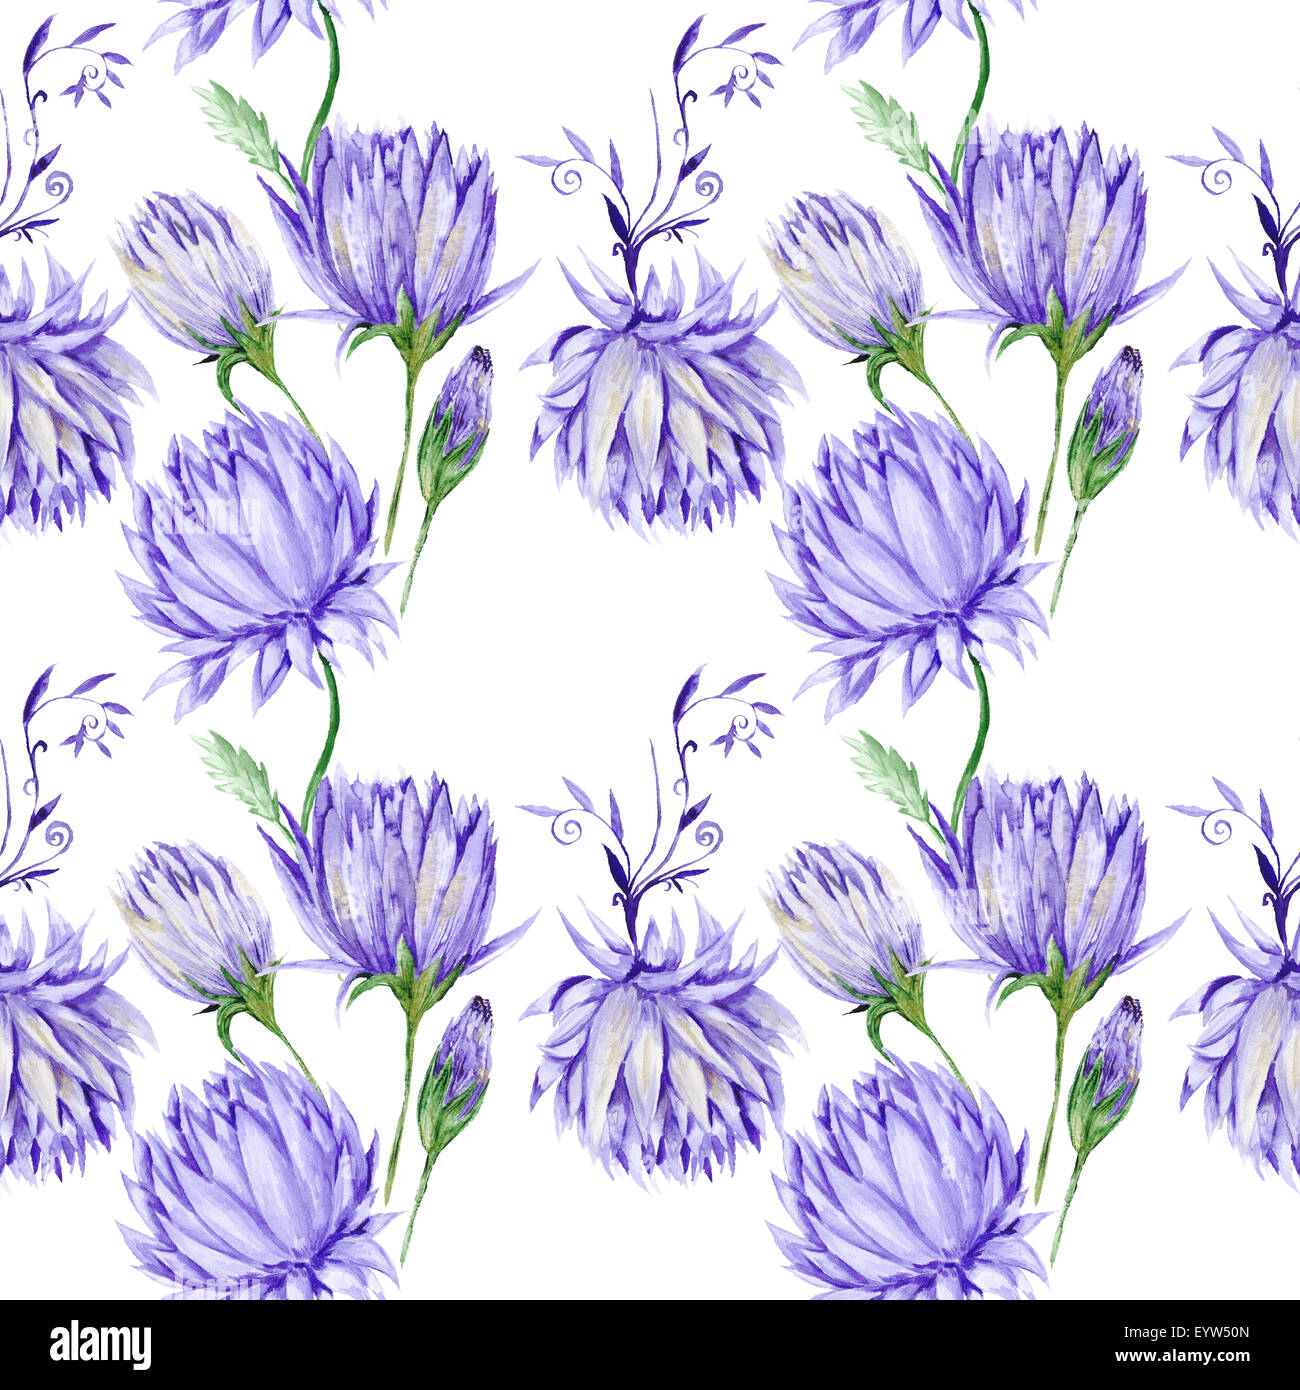 Art Creative Watercolor Wallpaper With Hand Painted Purple Flowers